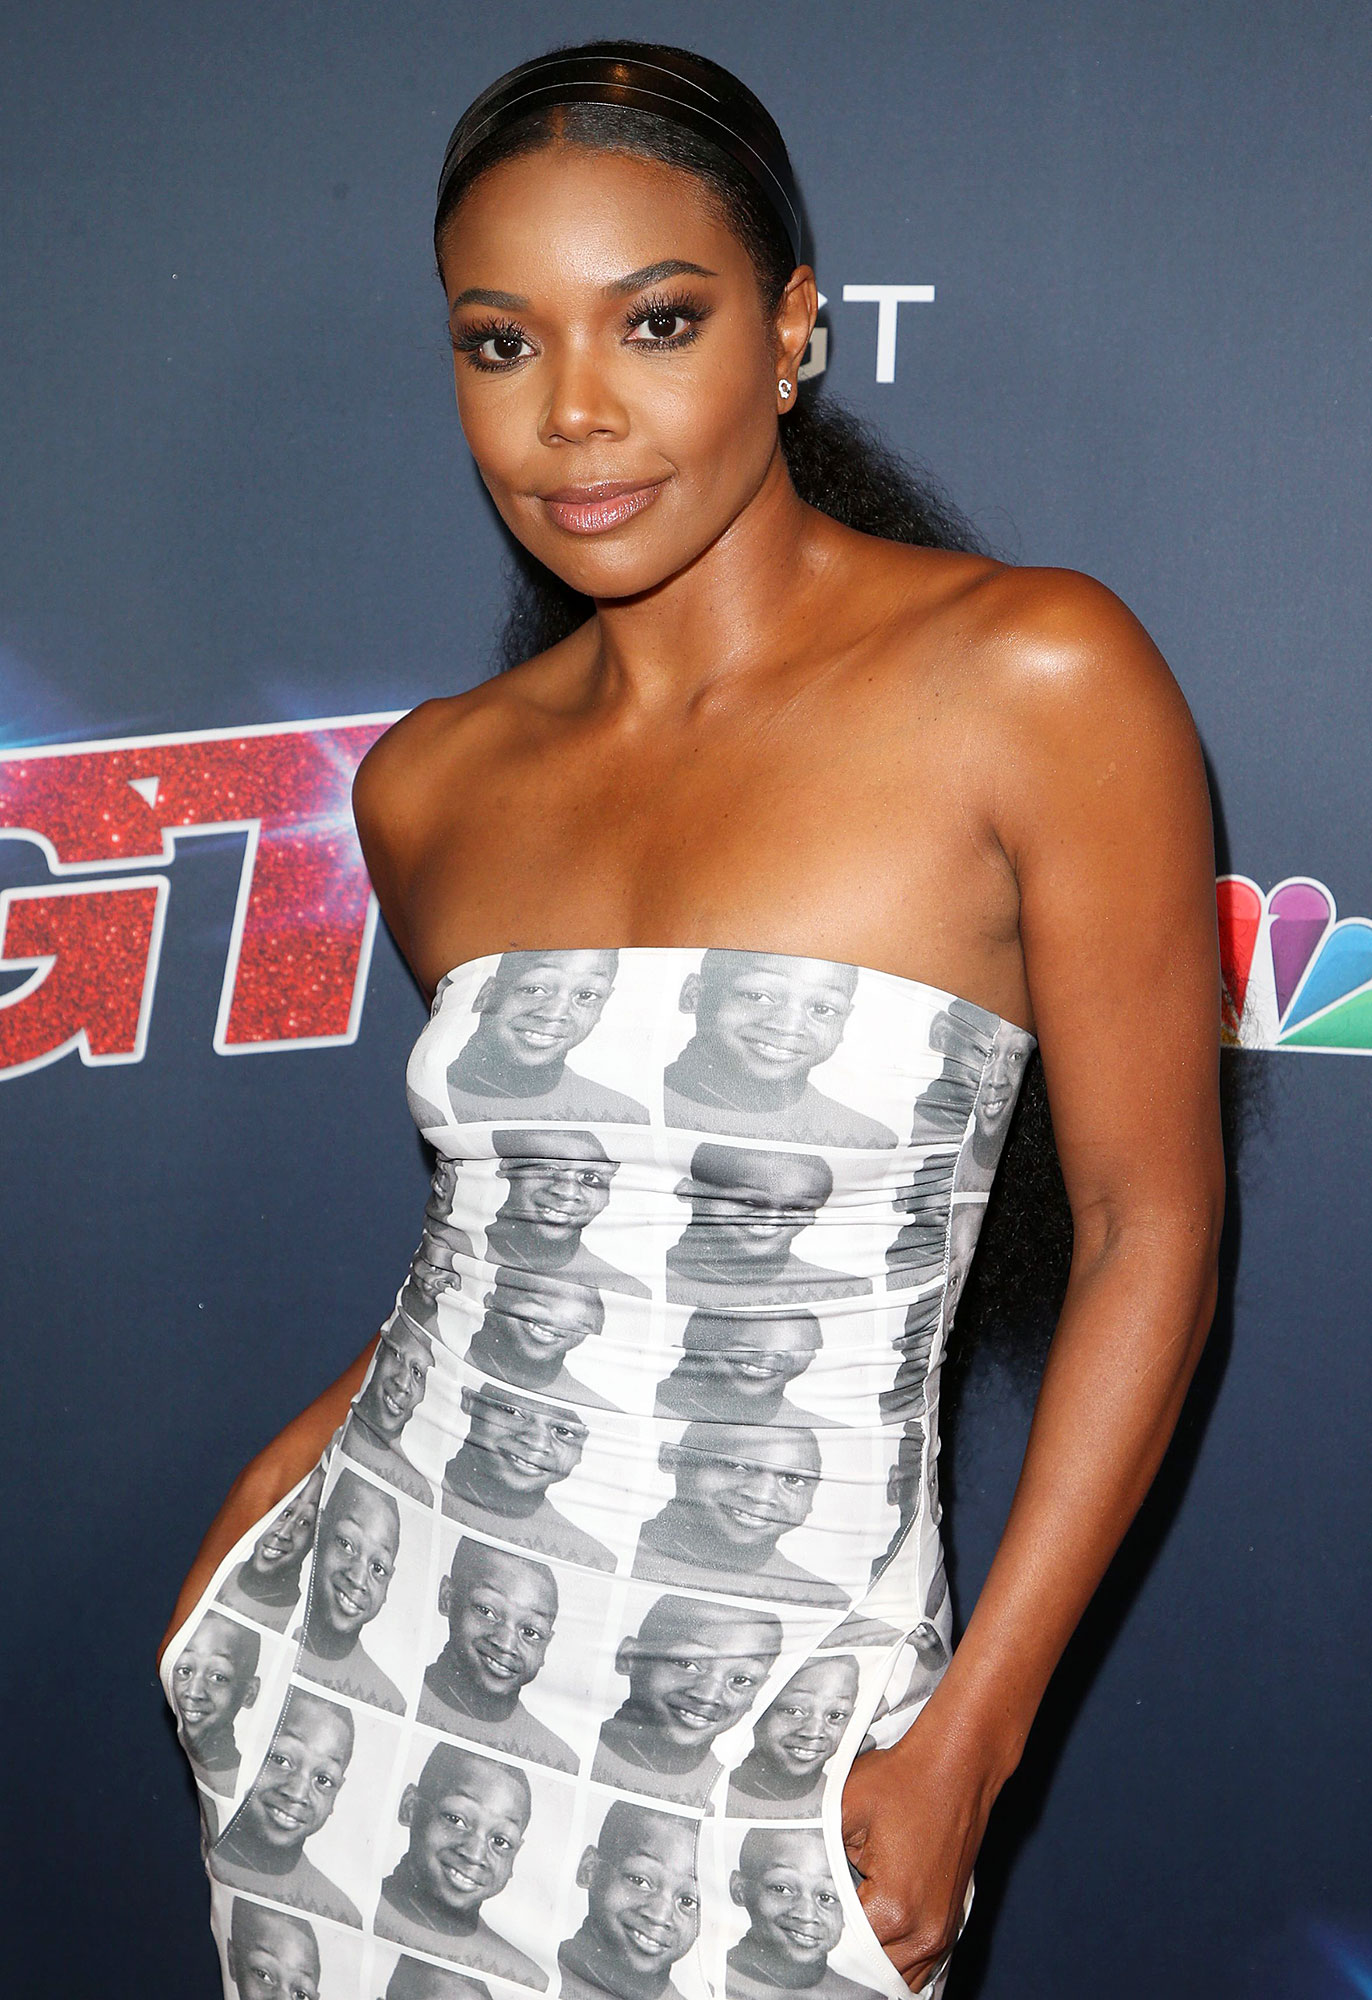 Gabrielle Union Didnt Recognize Herself Amid Americas Got Talent Controversy